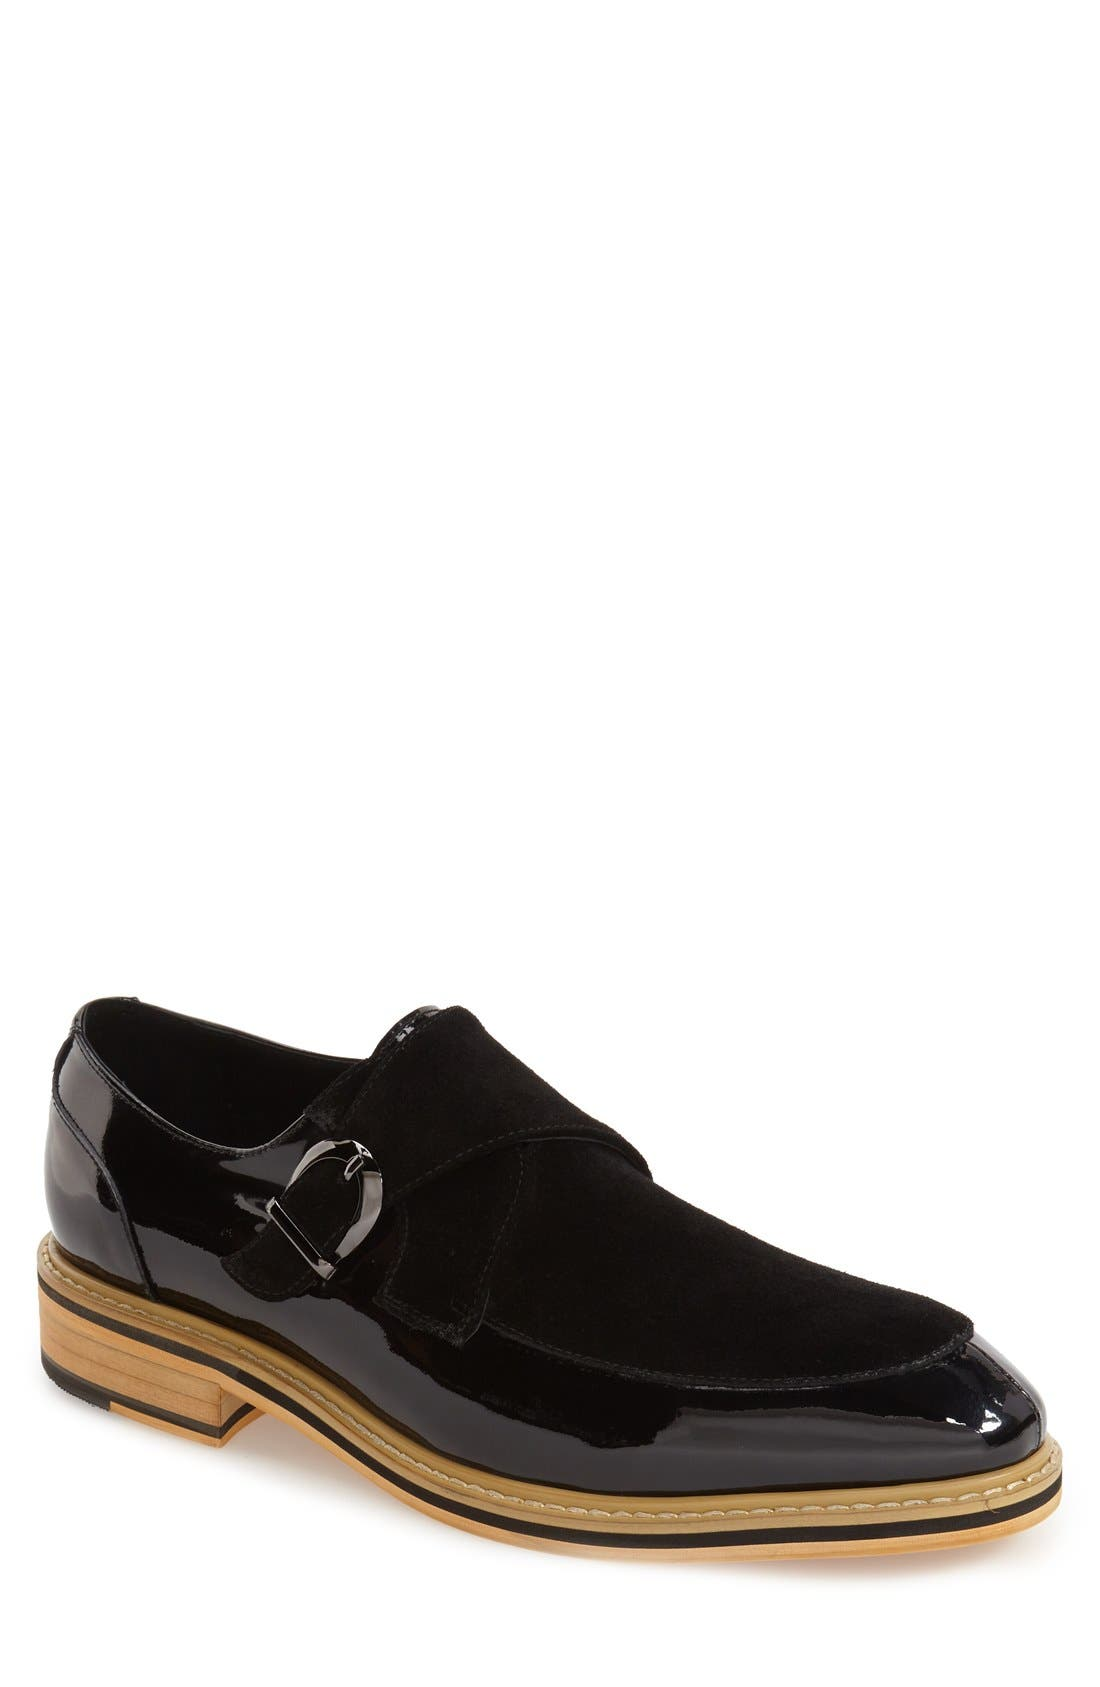 Zanzara 'Courbet' Monk Strap Shoe (Men)